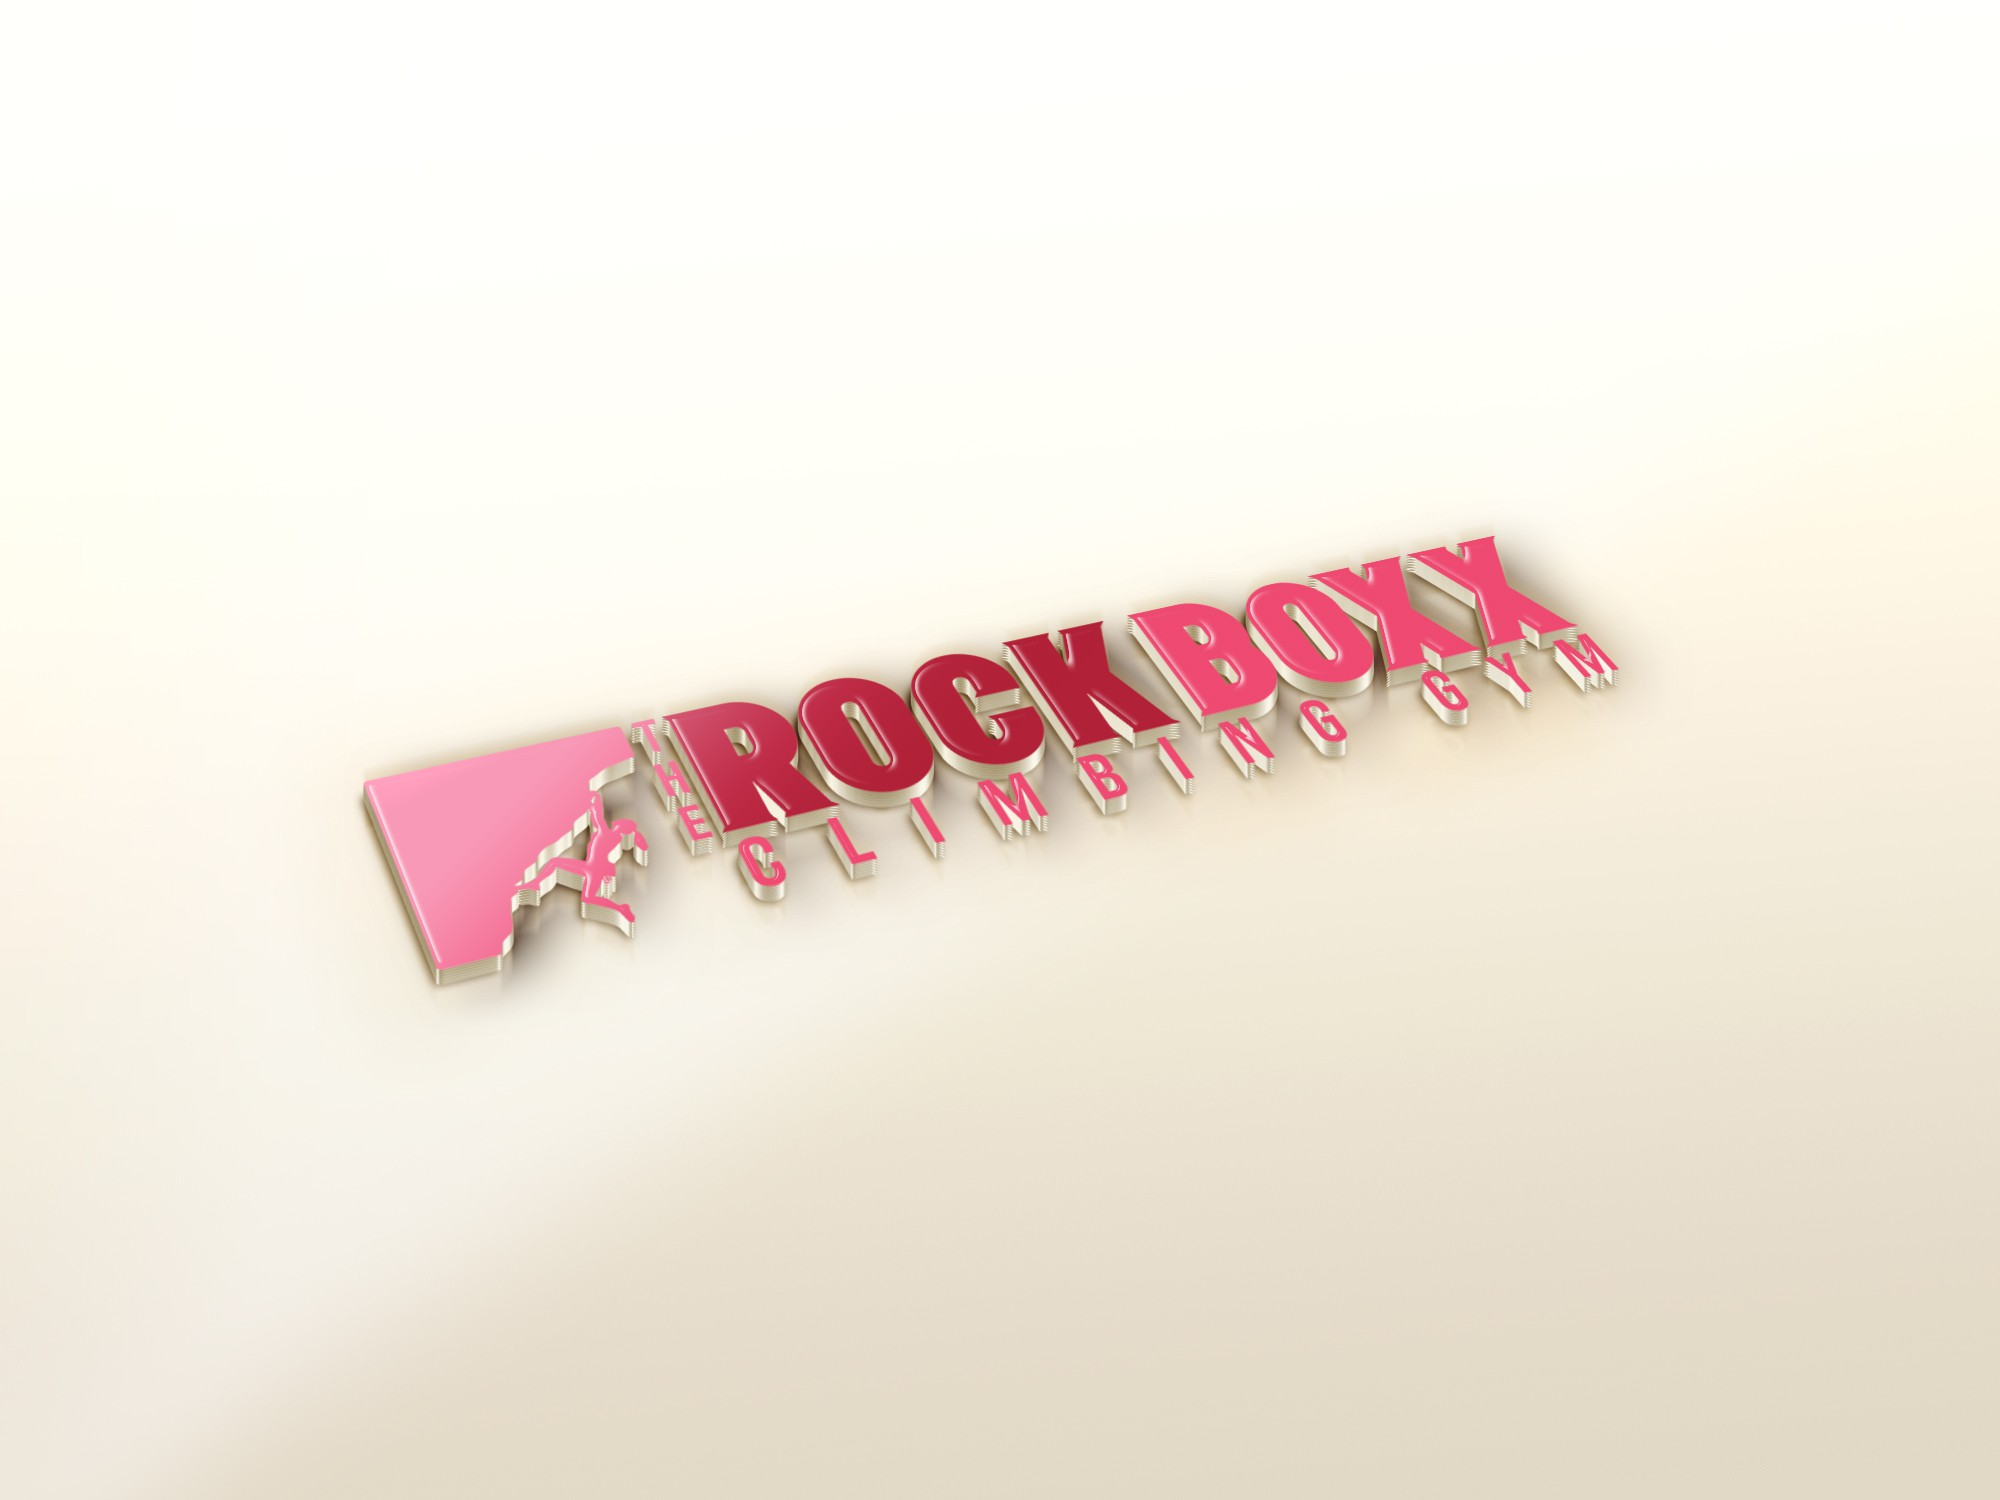 Feminine Version of the Rock Boxx Logo